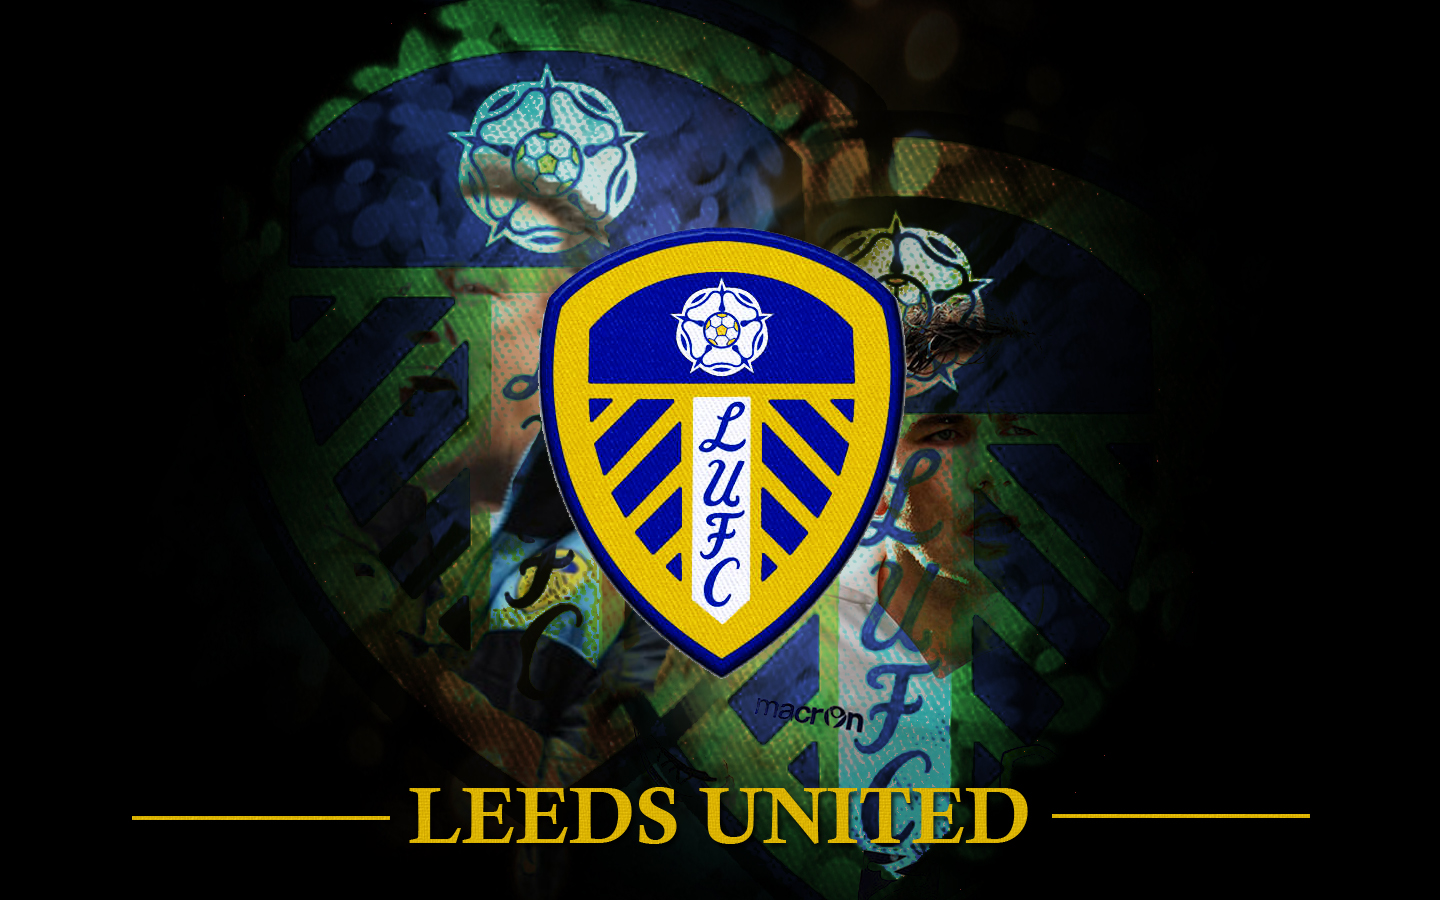 Sheffield United Iphone Wallpaper Leeds United Football Wallpaper Backgrounds And Picture